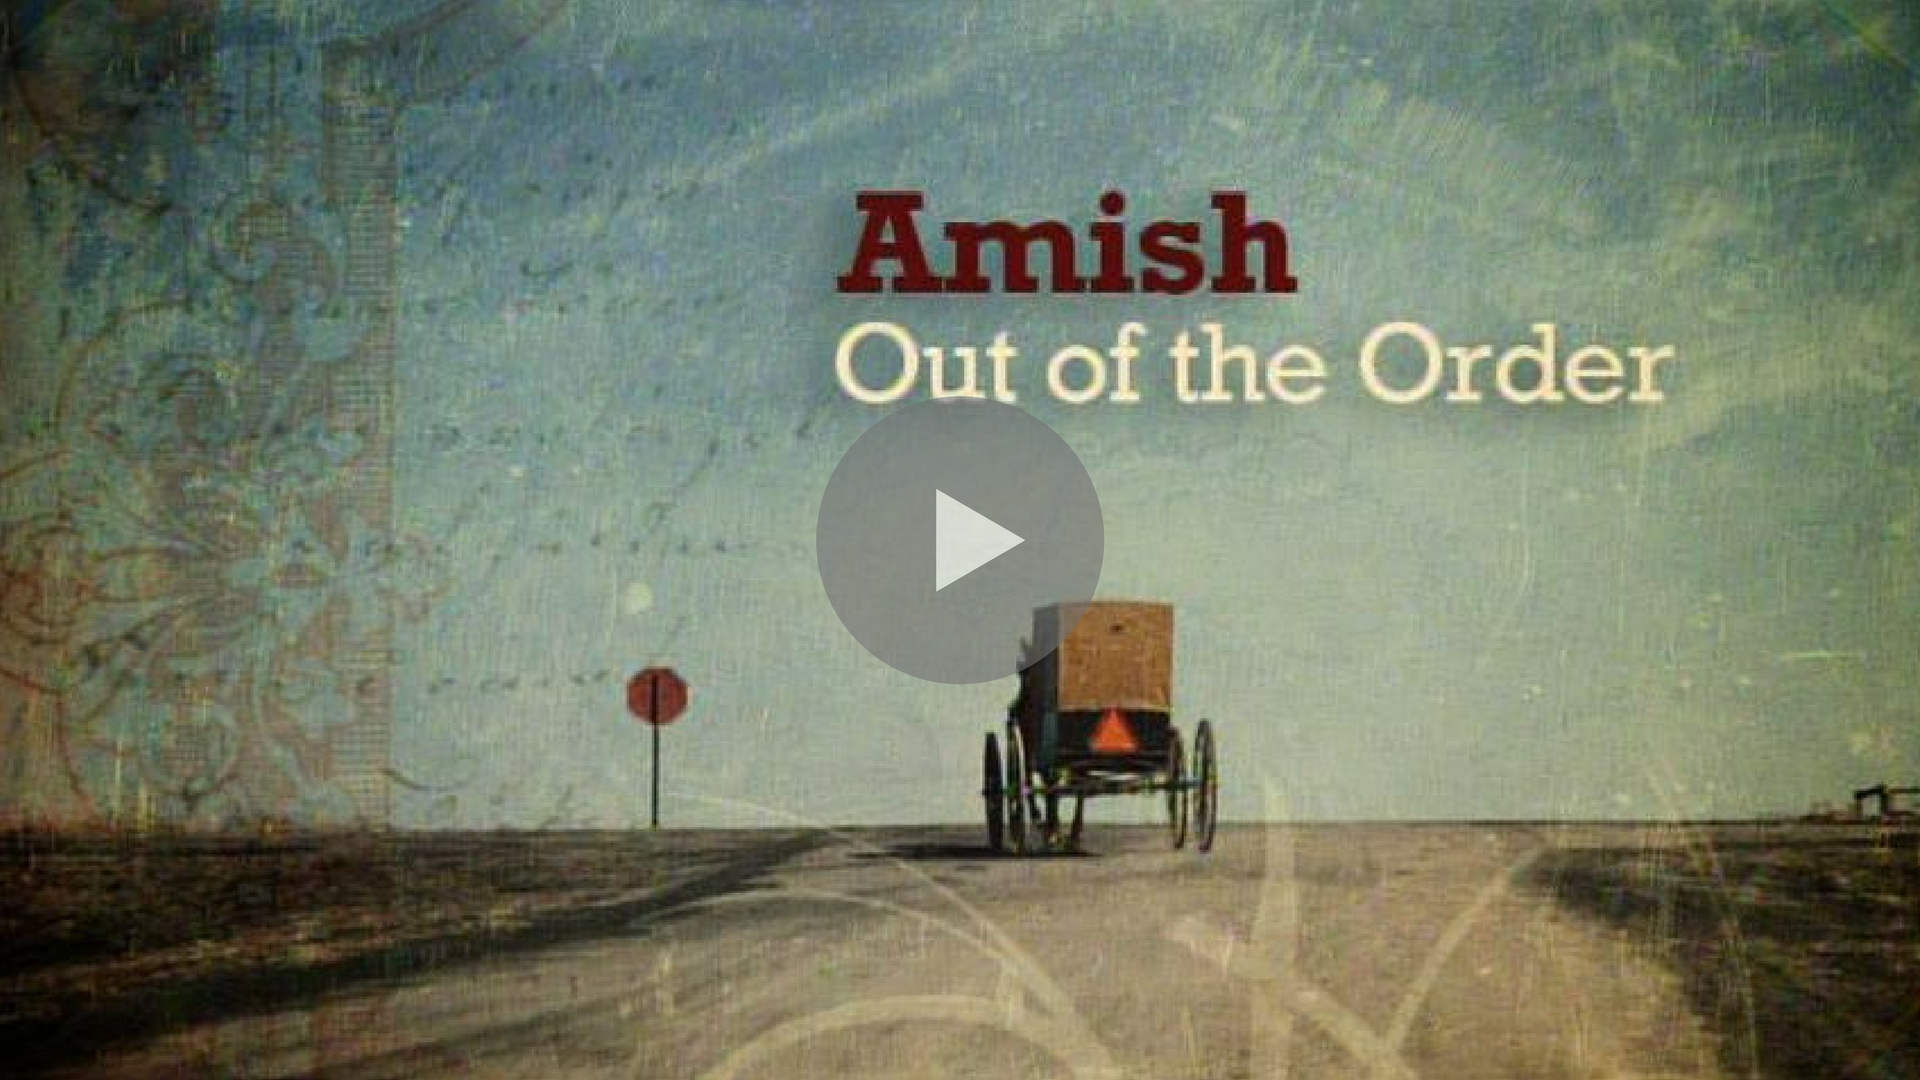 AMISH: OUT OF THE ORDER  (National Geographic Television) This segment produced and filmed by Andrew Mudge.